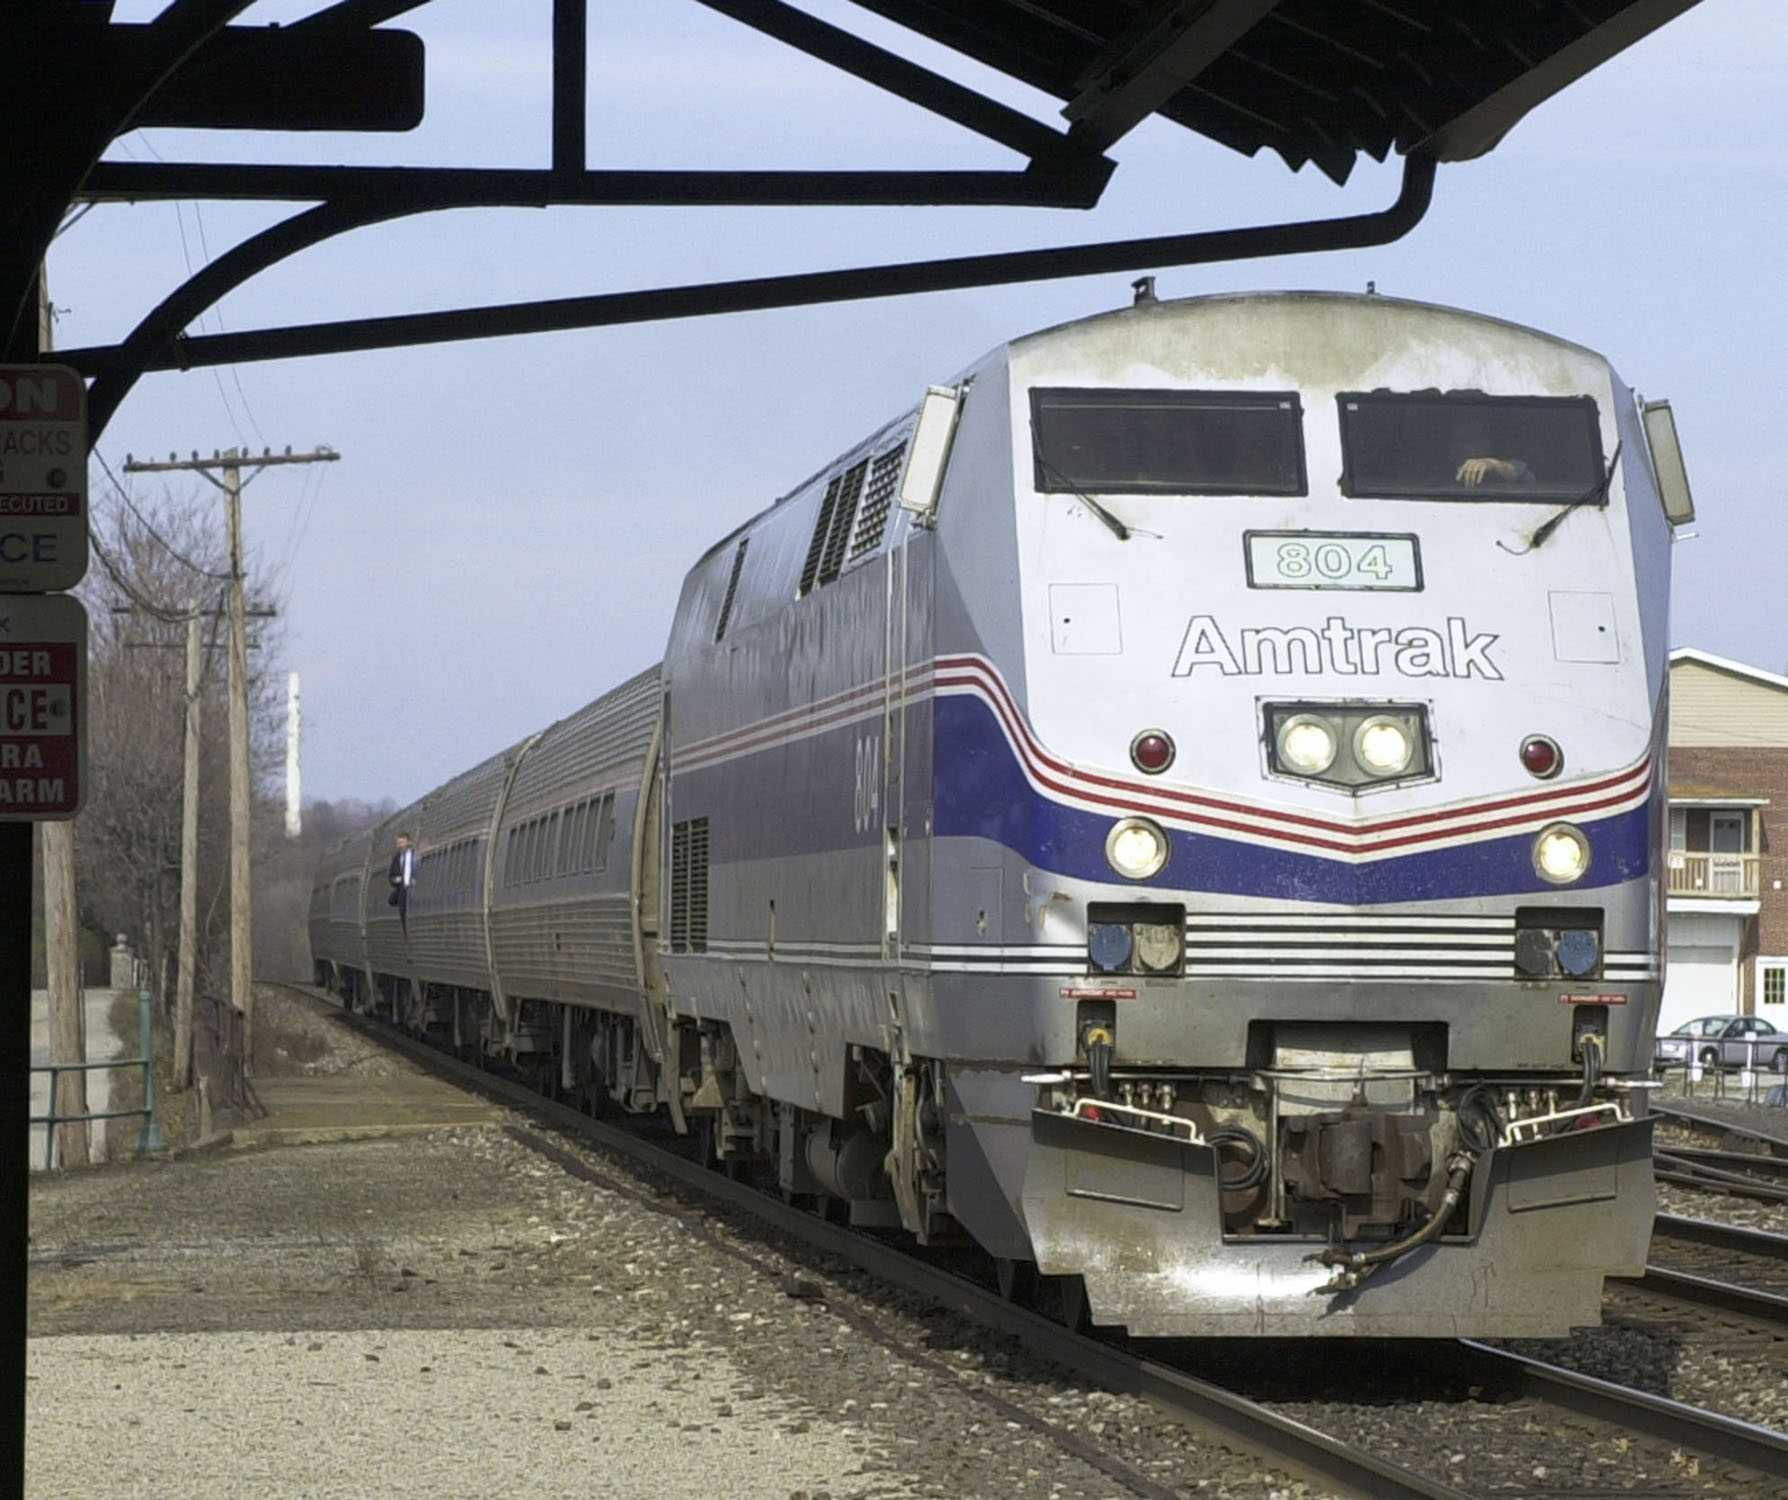 Amtrak train conductor shot by passenger near Chicago